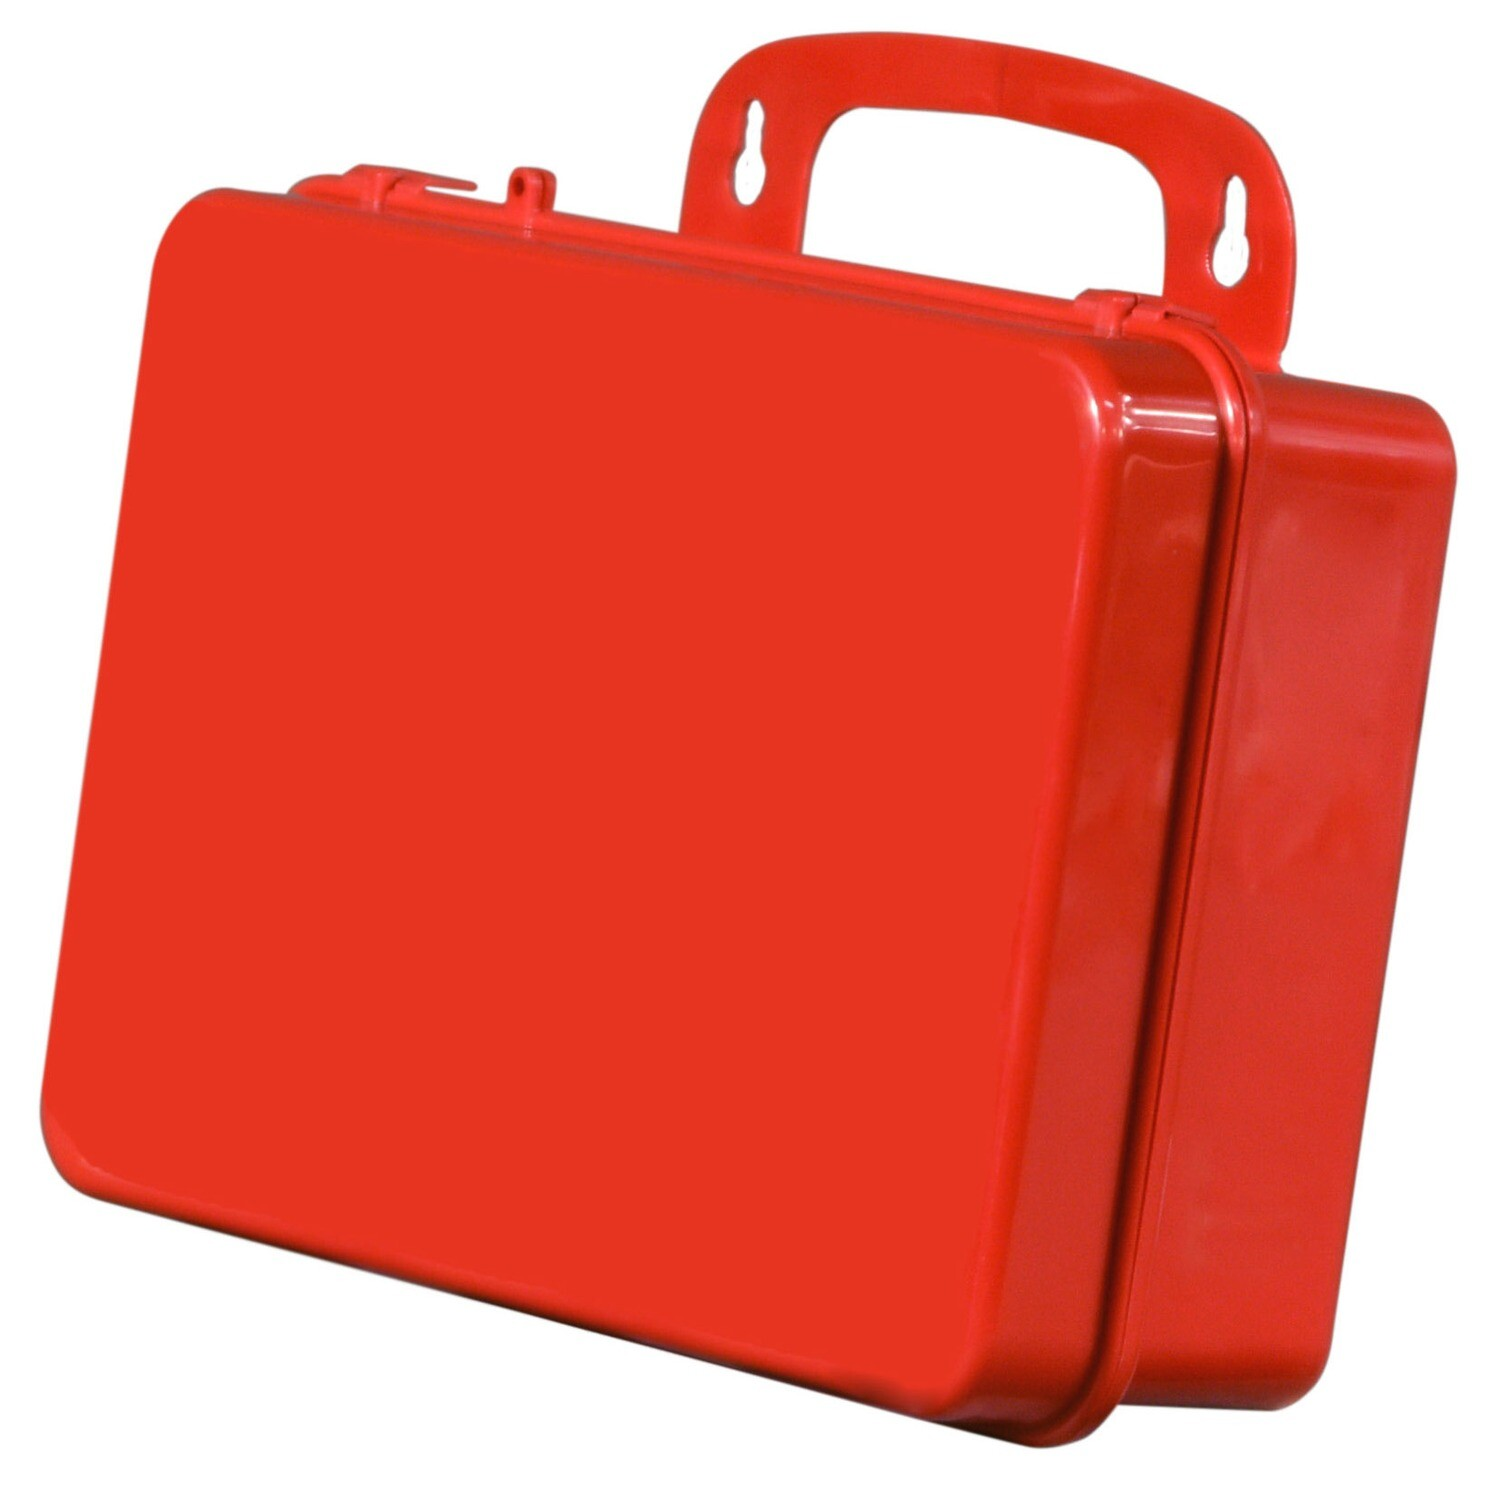 18PR – Empty – Poly Red First Aid Kit